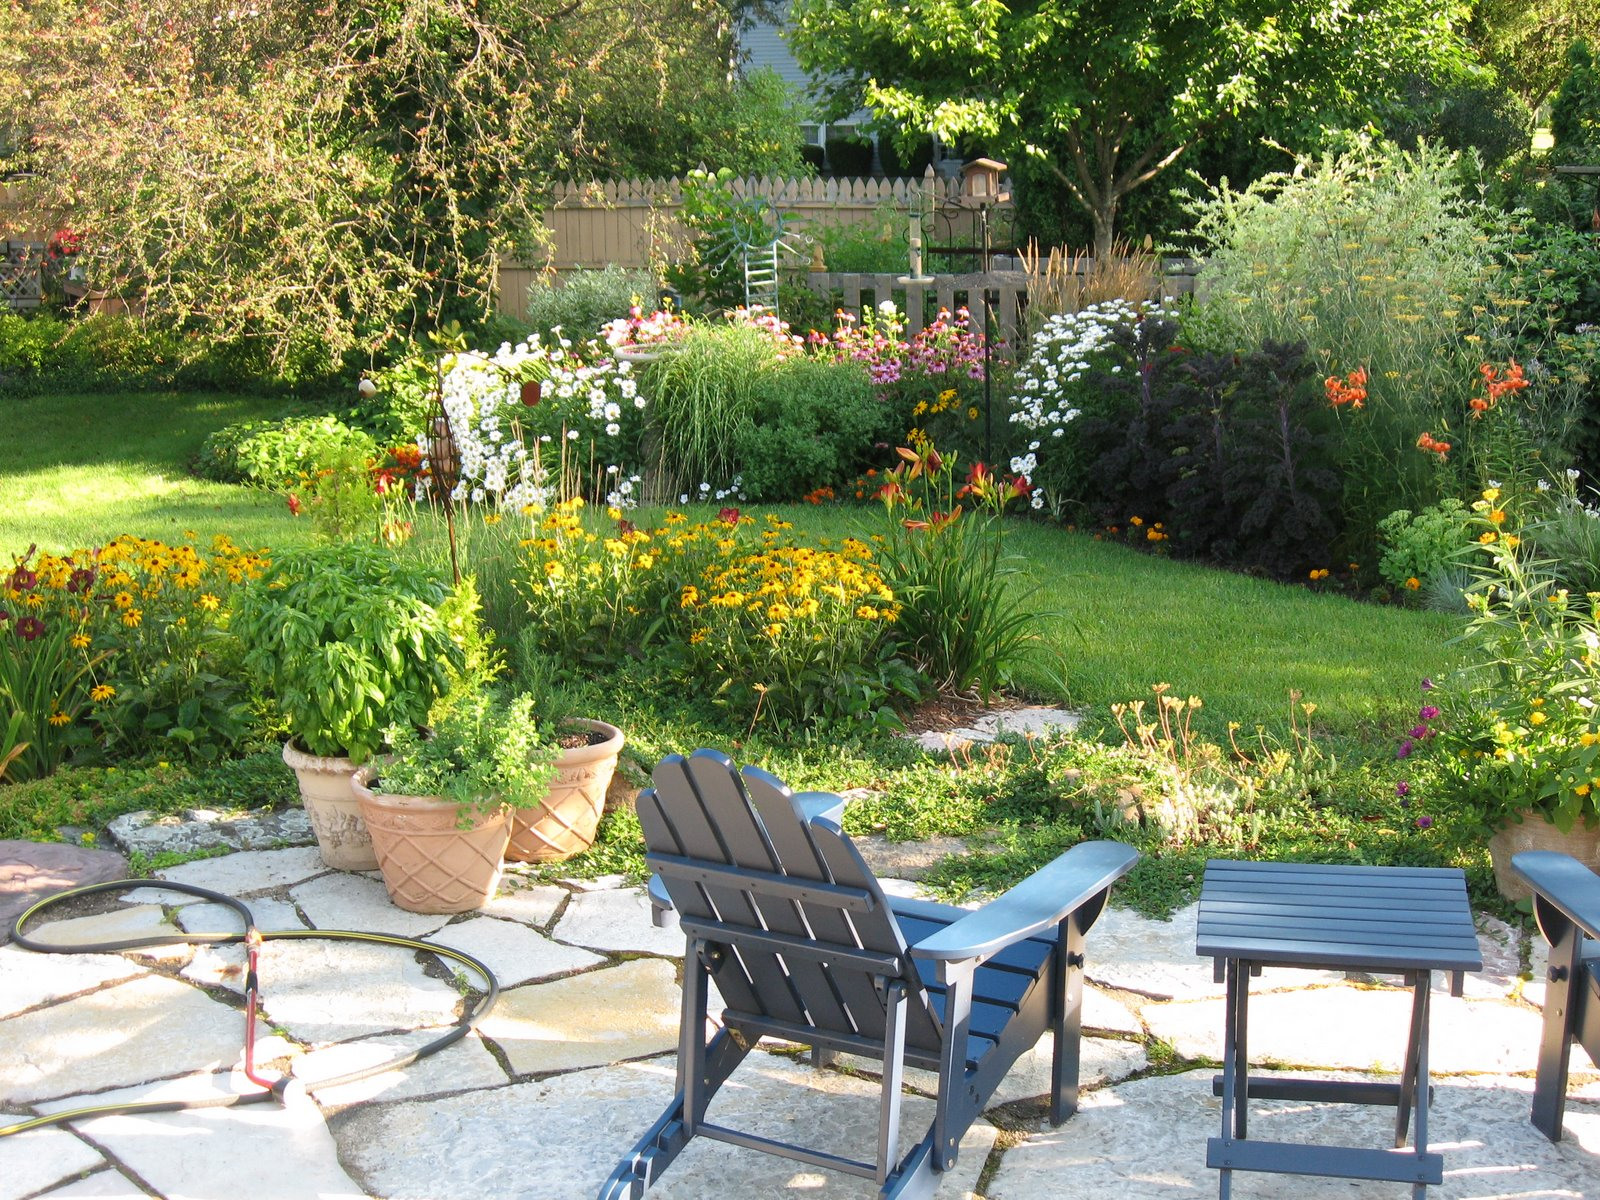 Blog awards linda 39 s yoga journey for House garden landscape